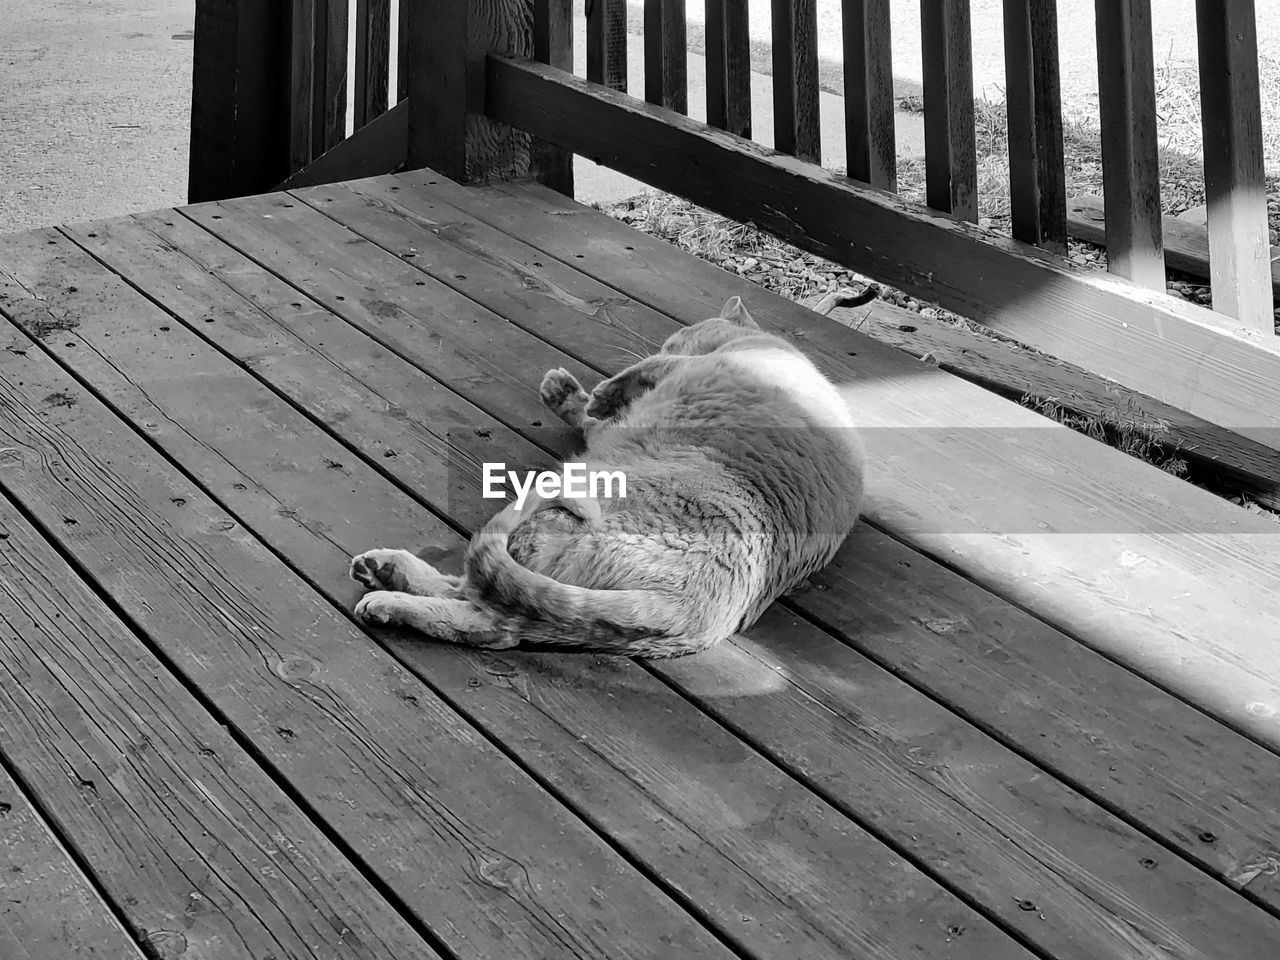 one animal, animal, animal themes, mammal, domestic, pets, domestic animals, vertebrate, domestic cat, cat, feline, relaxation, wood - material, resting, high angle view, no people, wood, lying down, sleeping, day, whisker